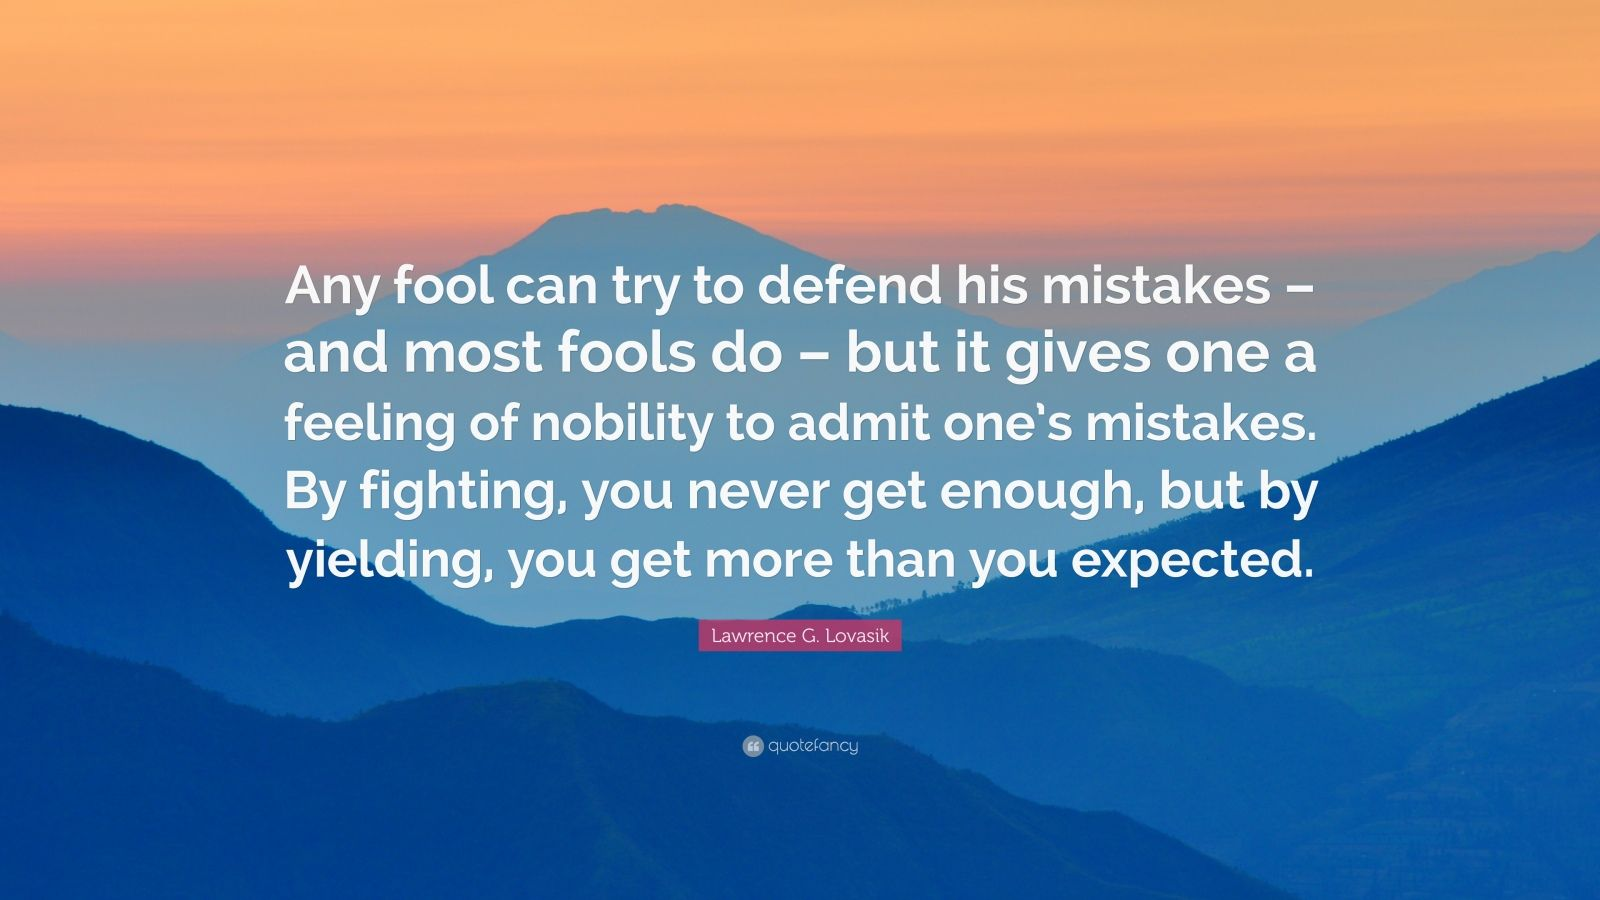 """Lawrence G. Lovasik Quote: """"Any fool can try to defend his mistakes – and most fools do – but it gives one a feeling of nobility to admit one's mistakes. By fighting, you never get enough, but by yielding, you get more than you expected."""""""